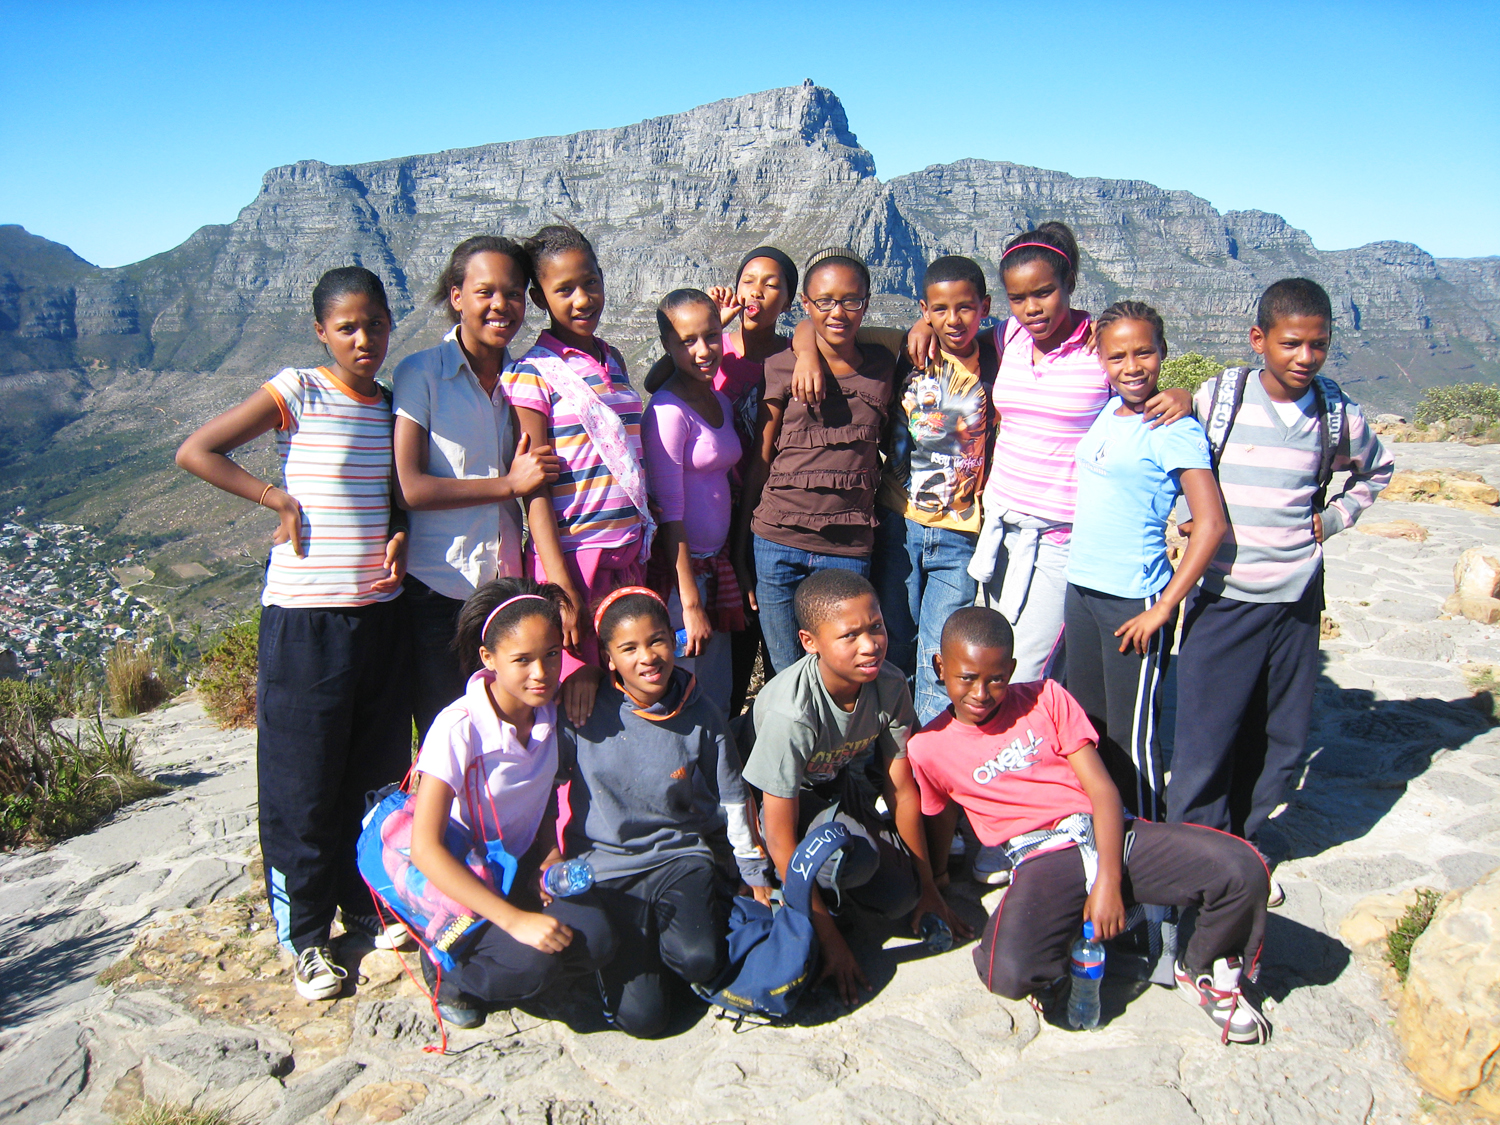 hiking-club-tm.jpg copy